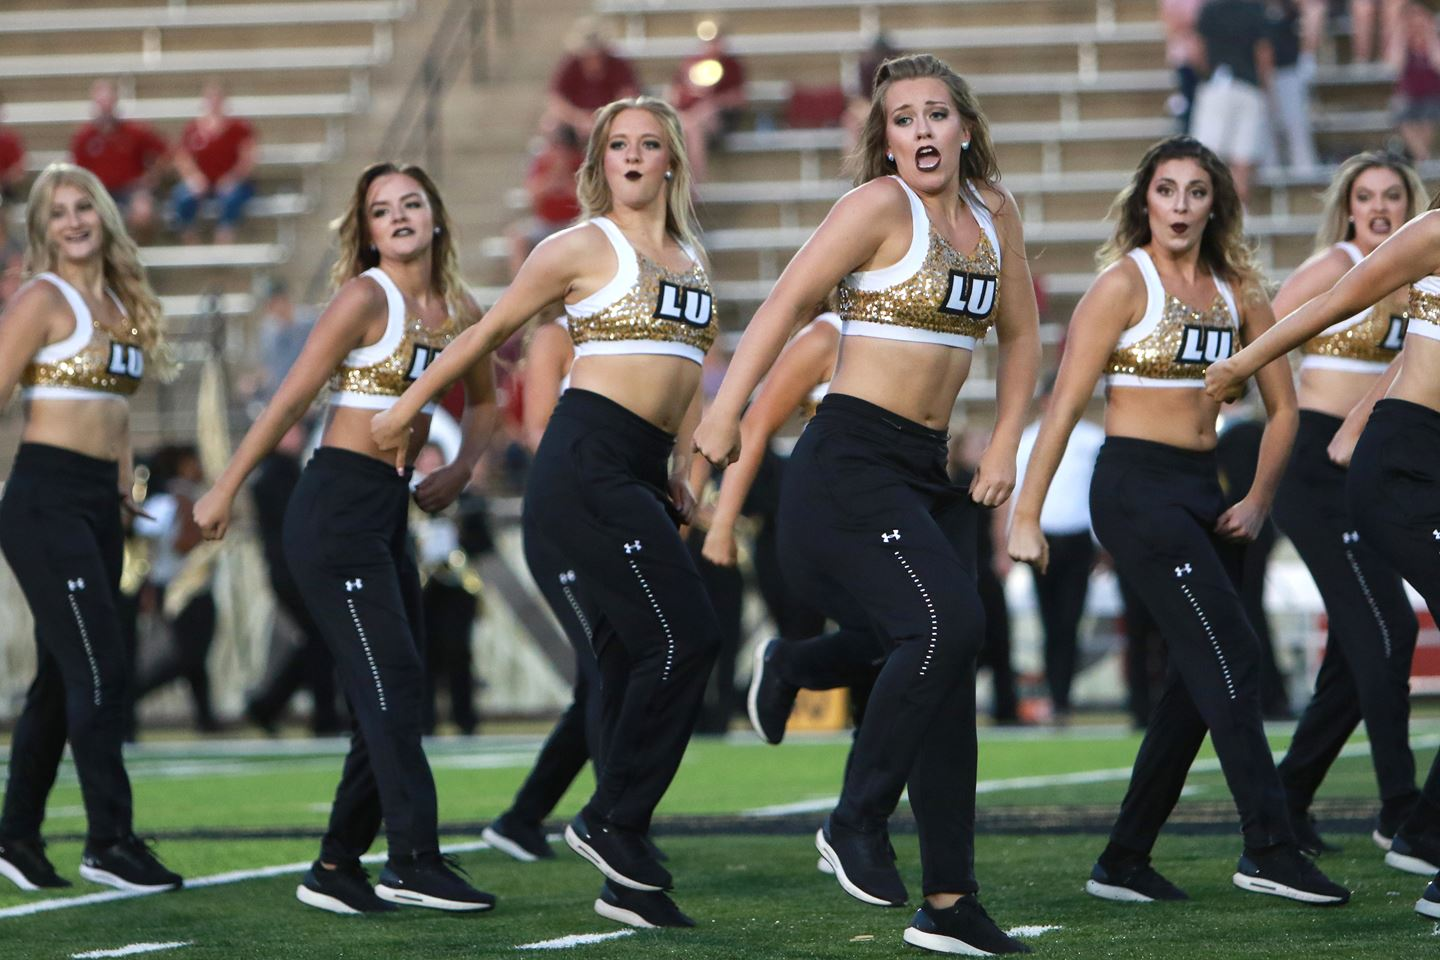 The Lindenwood Lion Line will be teaching a hip hop combo in the style that has won numerous national championships!